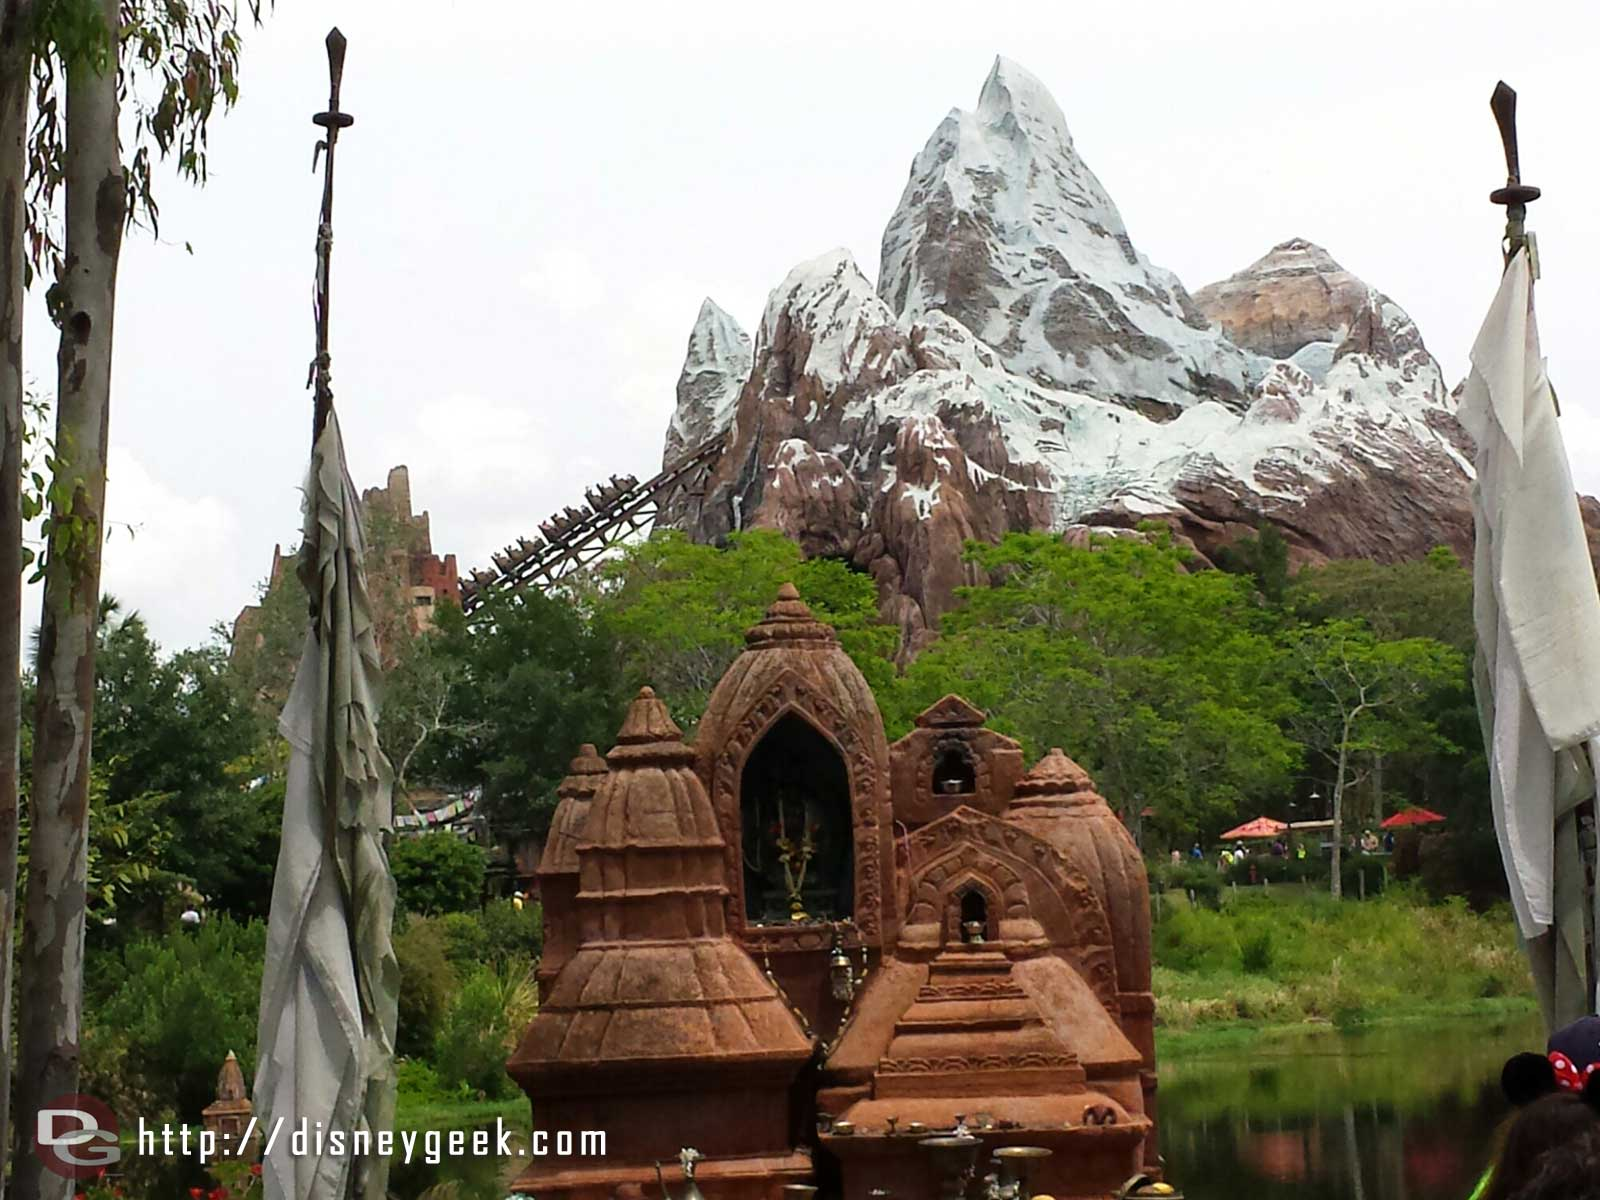 Expedition Everest – Disney's Animal Kingdom